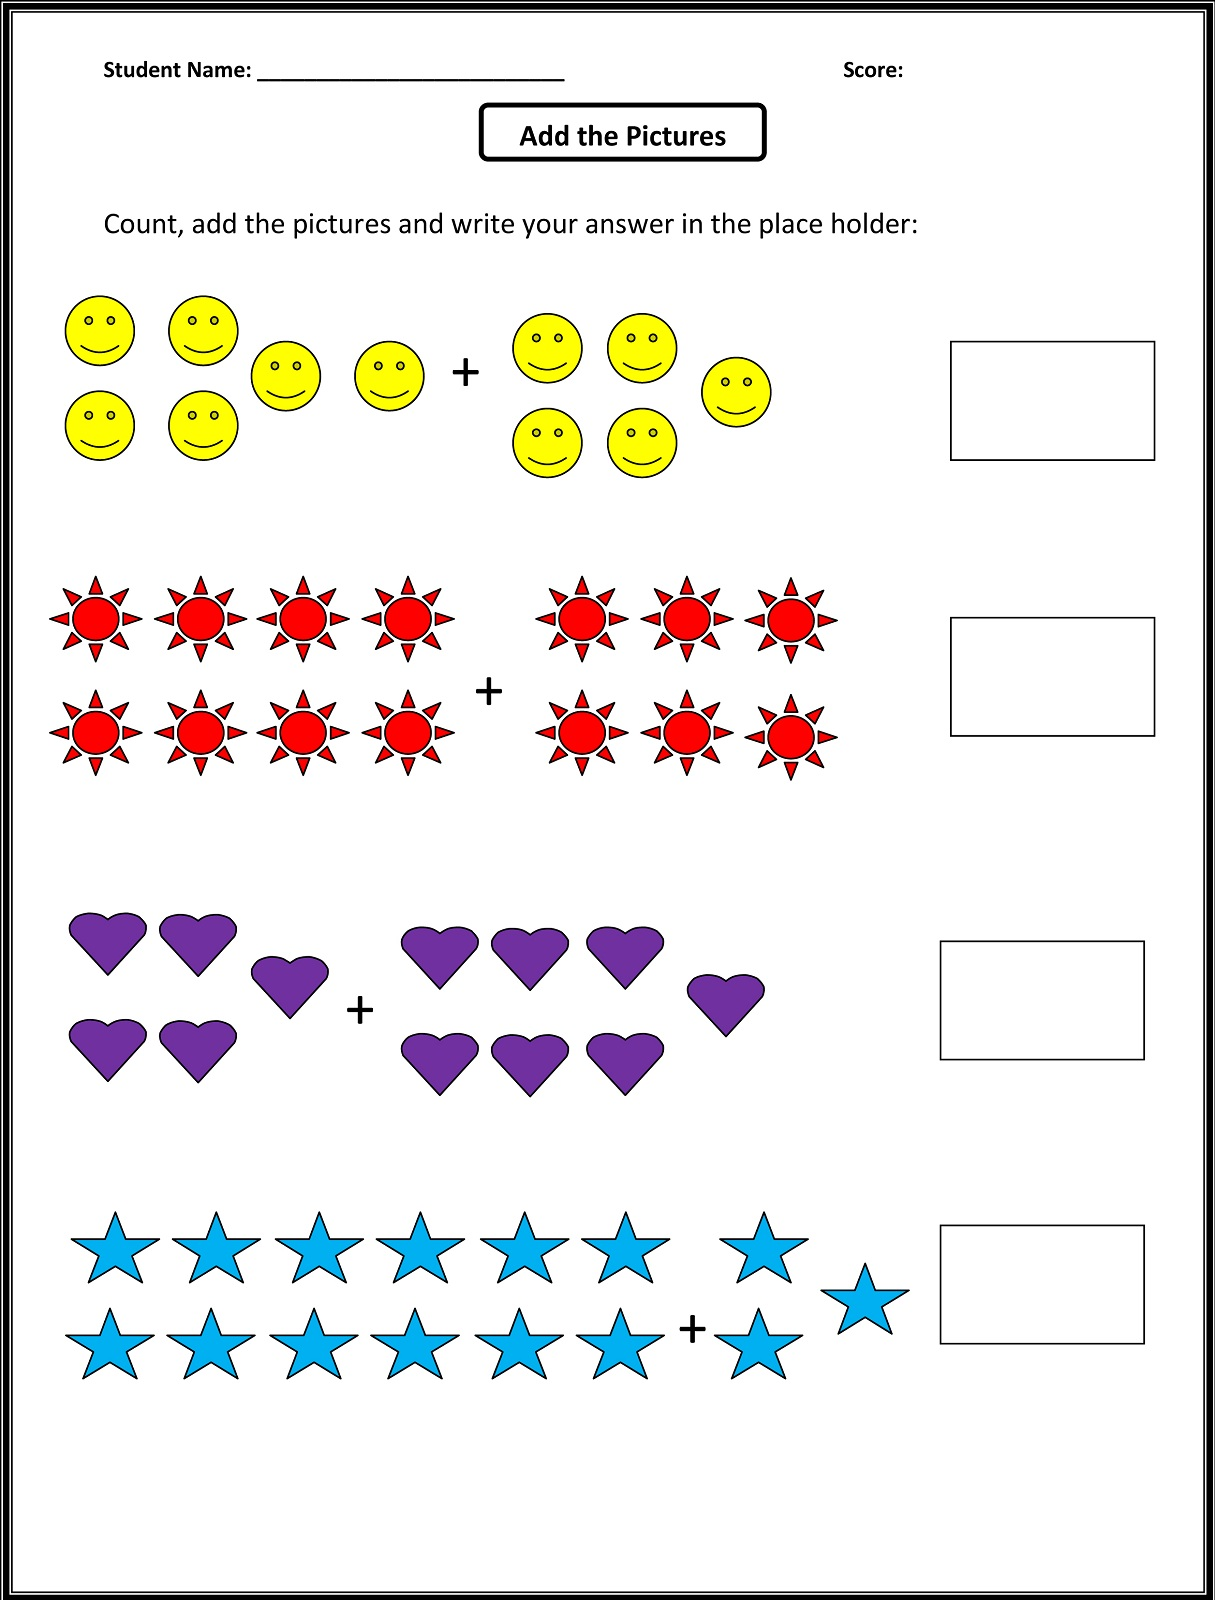 math worksheet : worksheets for 1st grade math  activity shelter : 1st Grade Math Worksheets